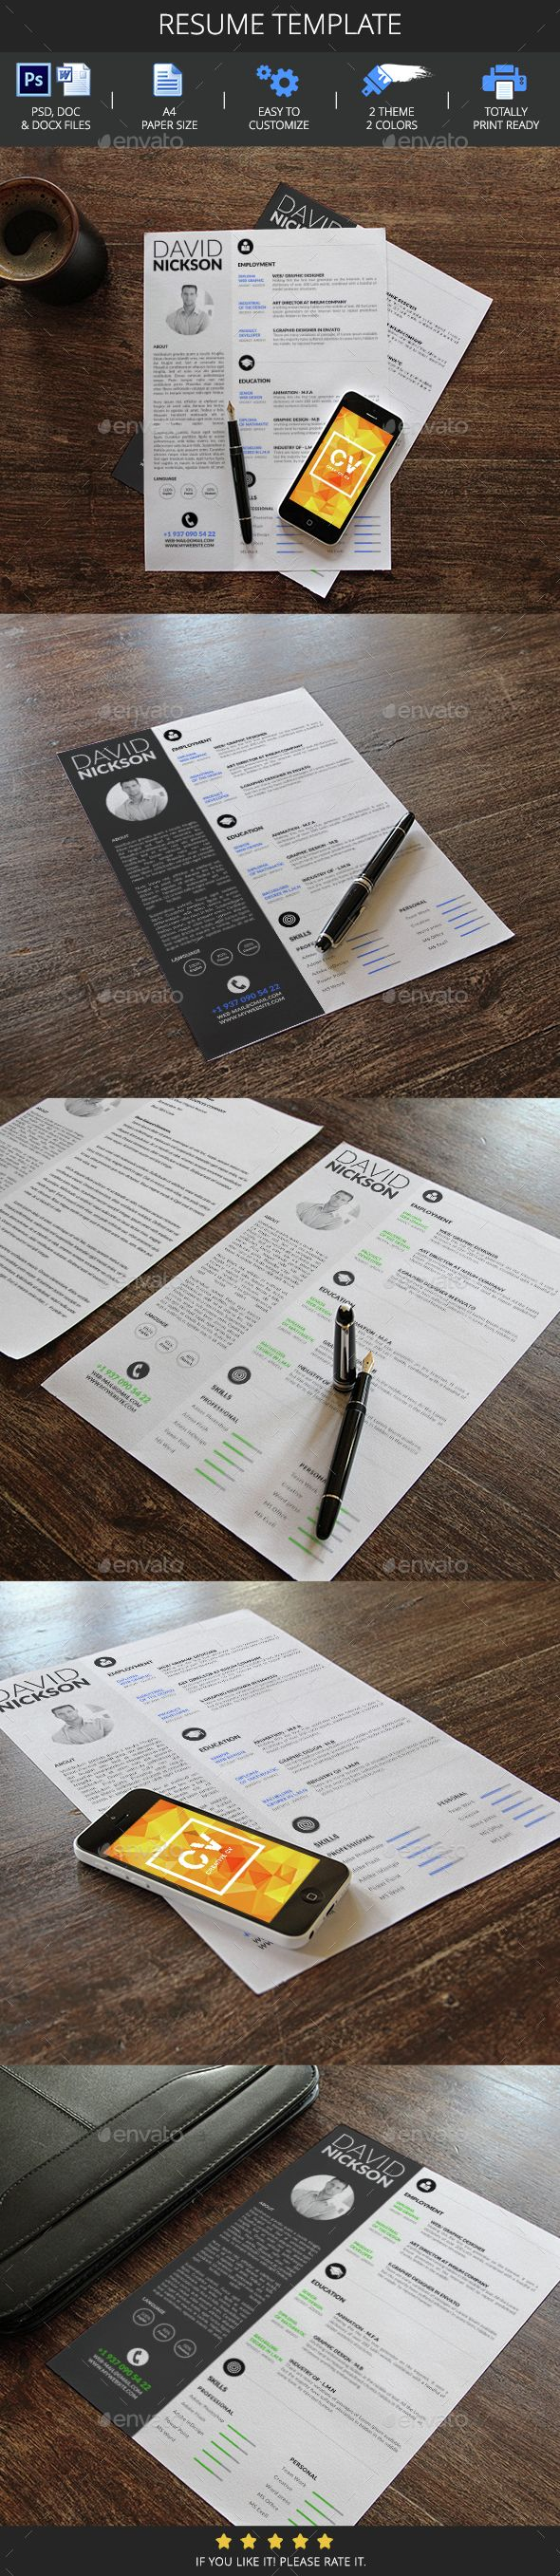 Resume Template 72 best Printable Design images